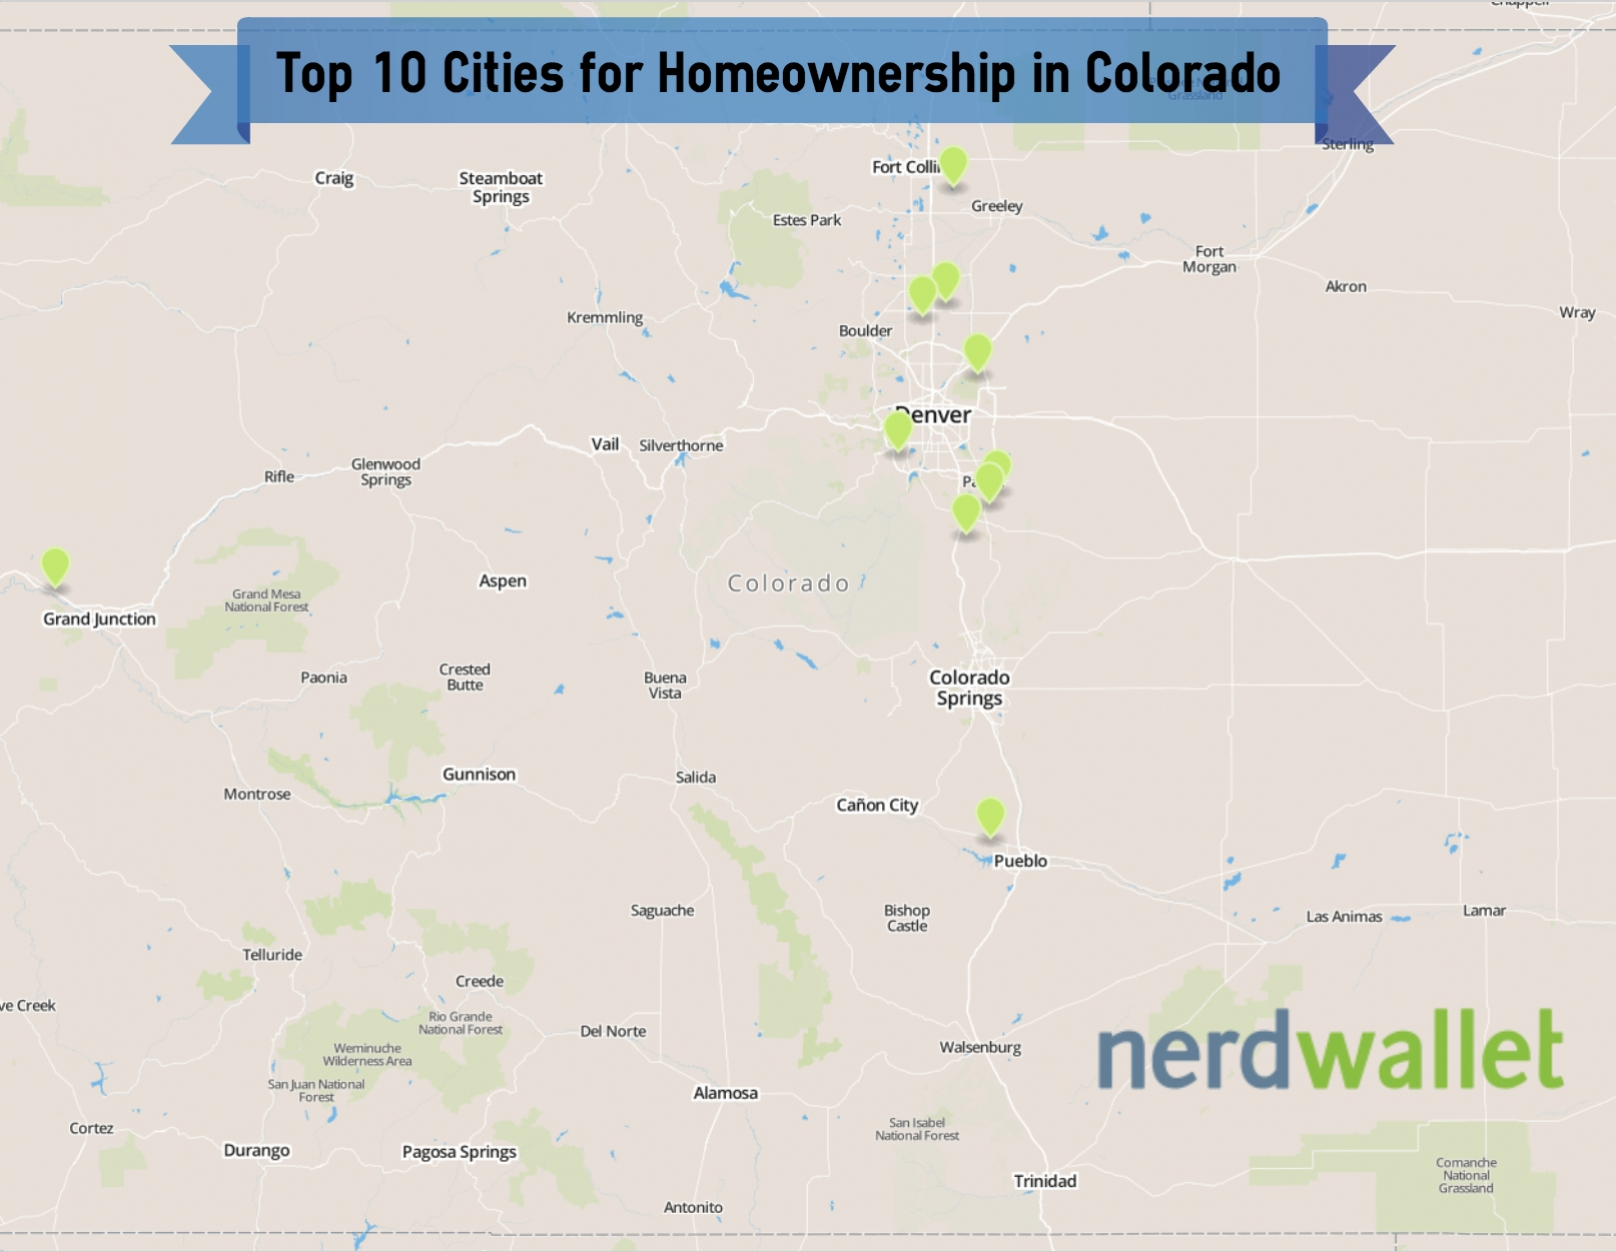 Top 10 Cities for Homeownership in Colorado